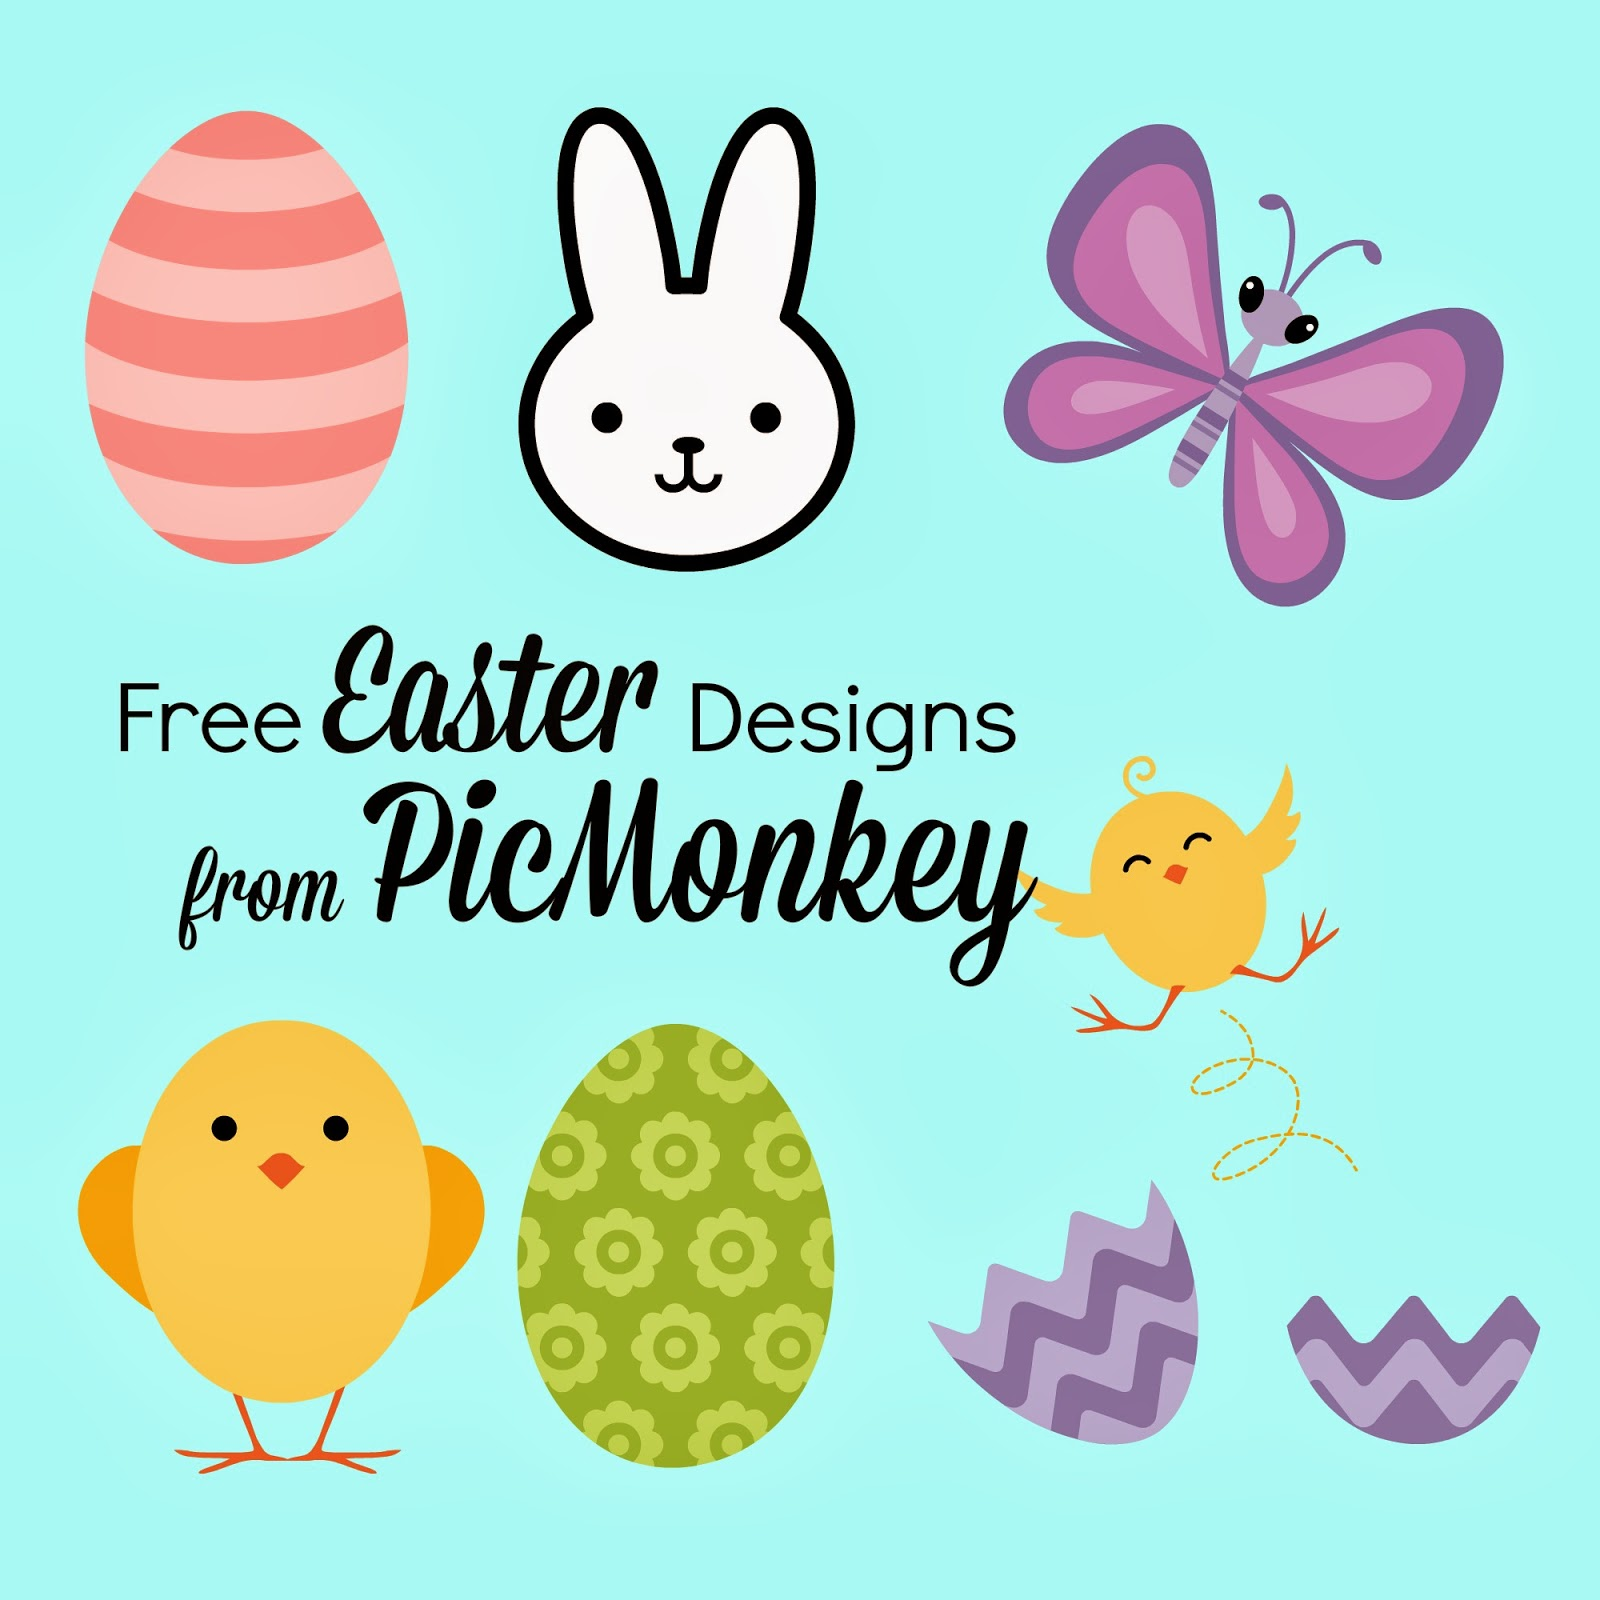 Wonderful Easter Font, Designs, Free, Silhouette Friendly